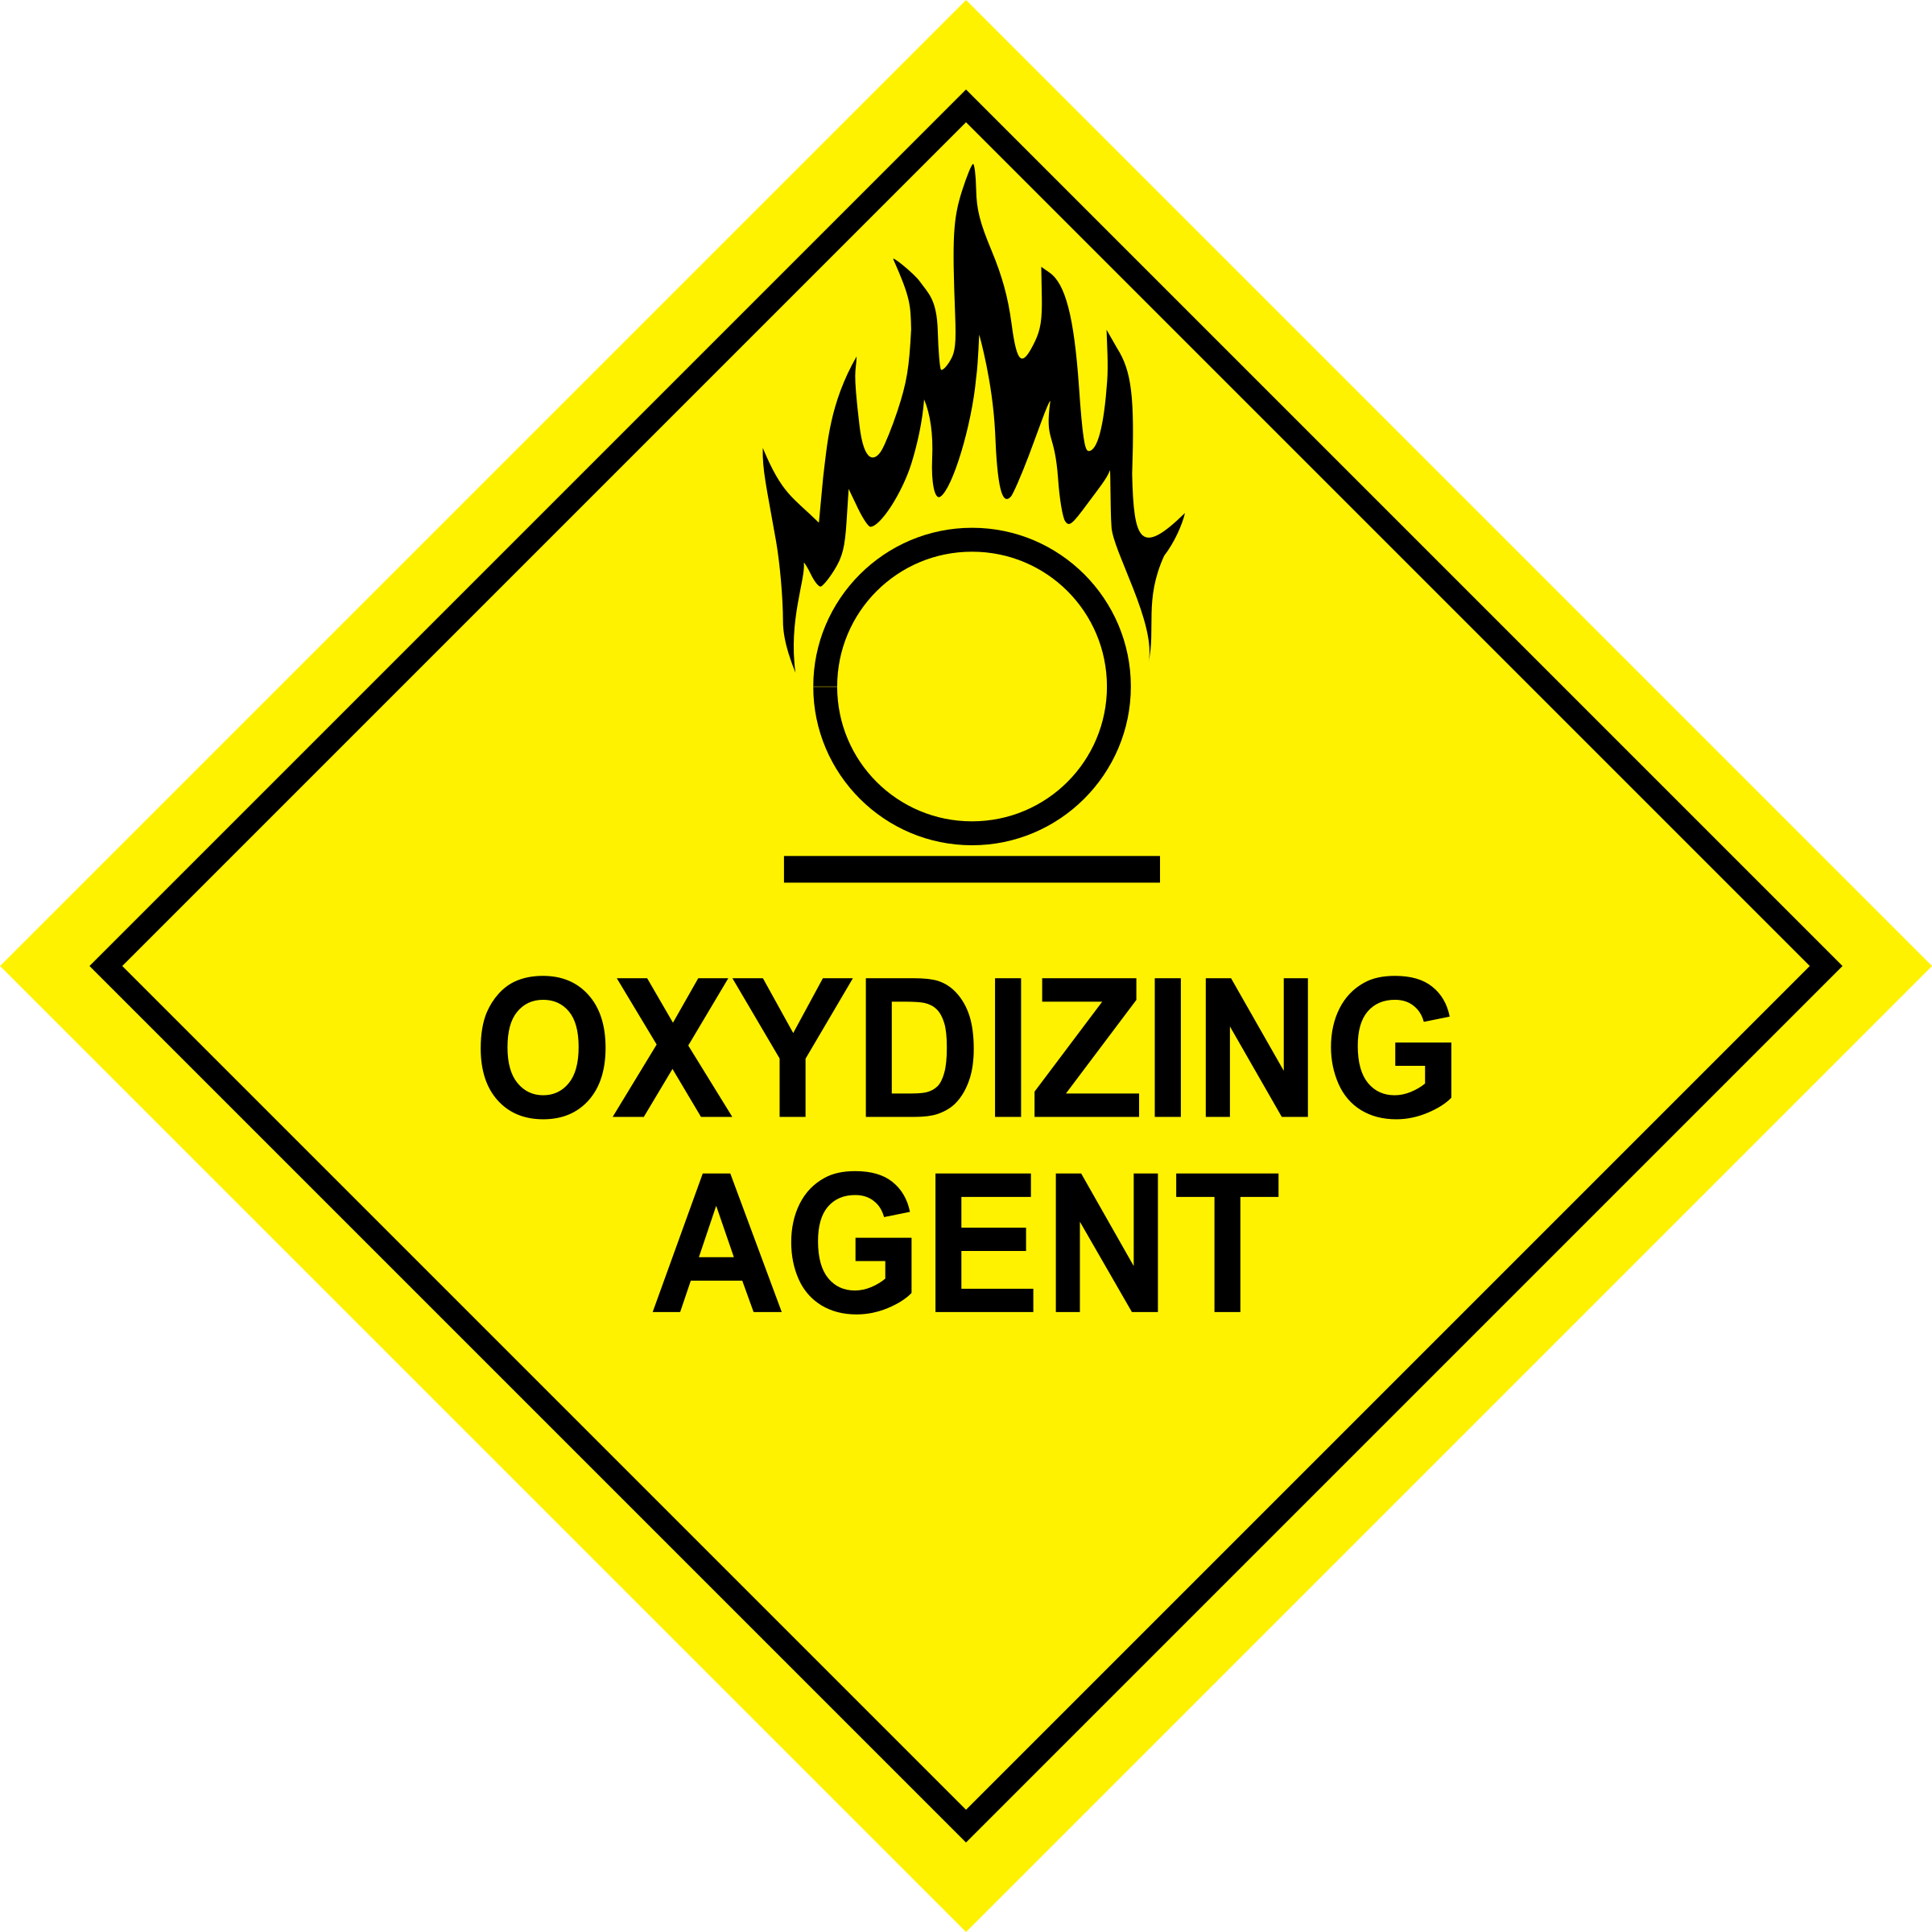 Oxidizing Agent Sign by boobaloo